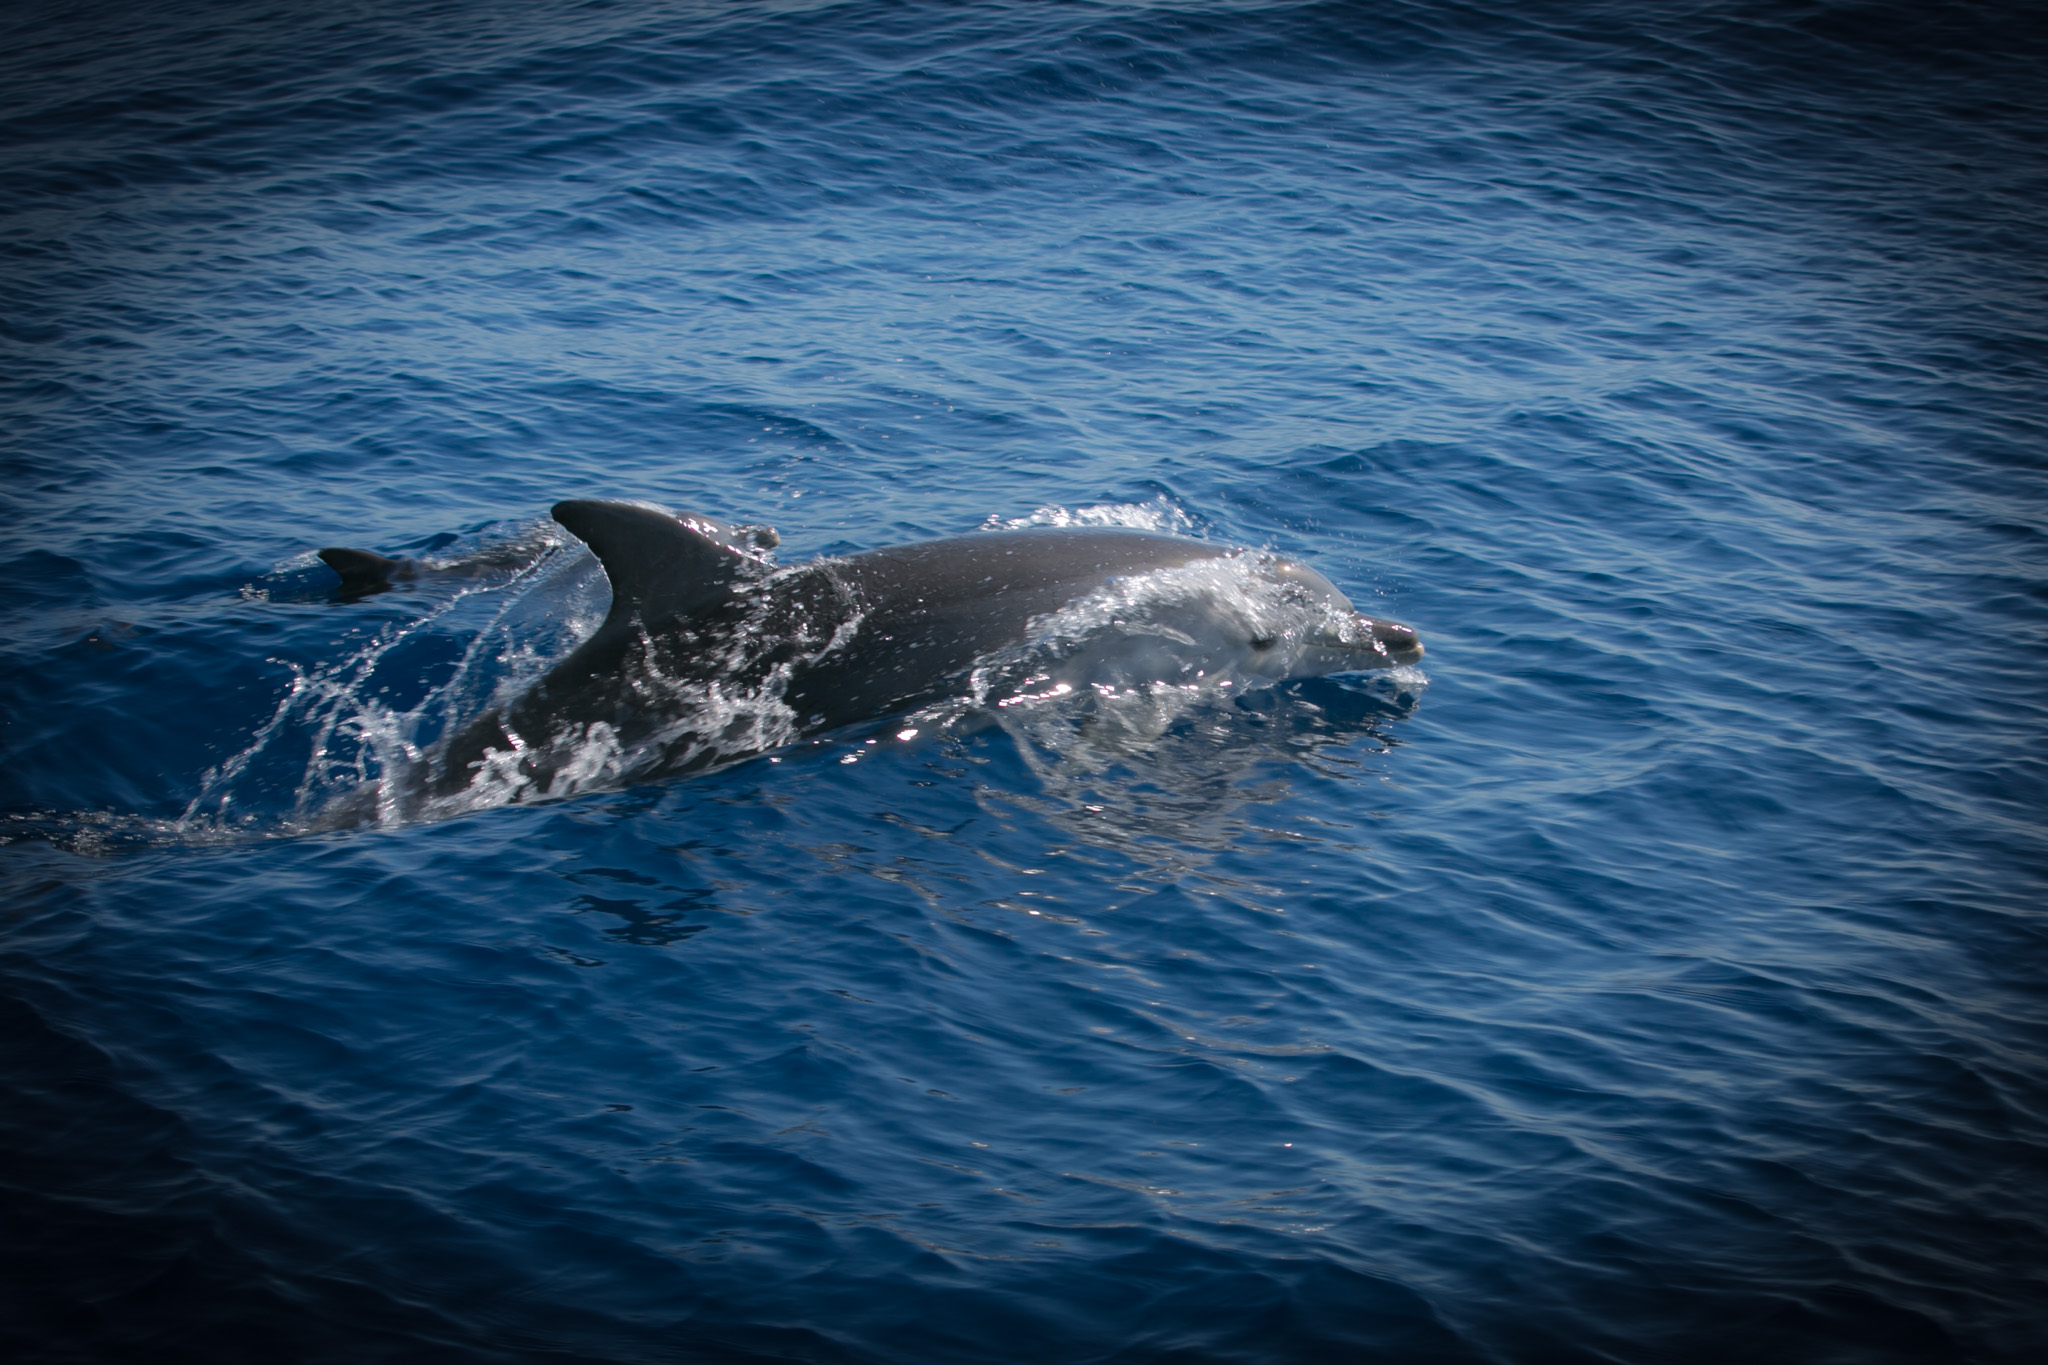 Dolphins: Mum and Calf